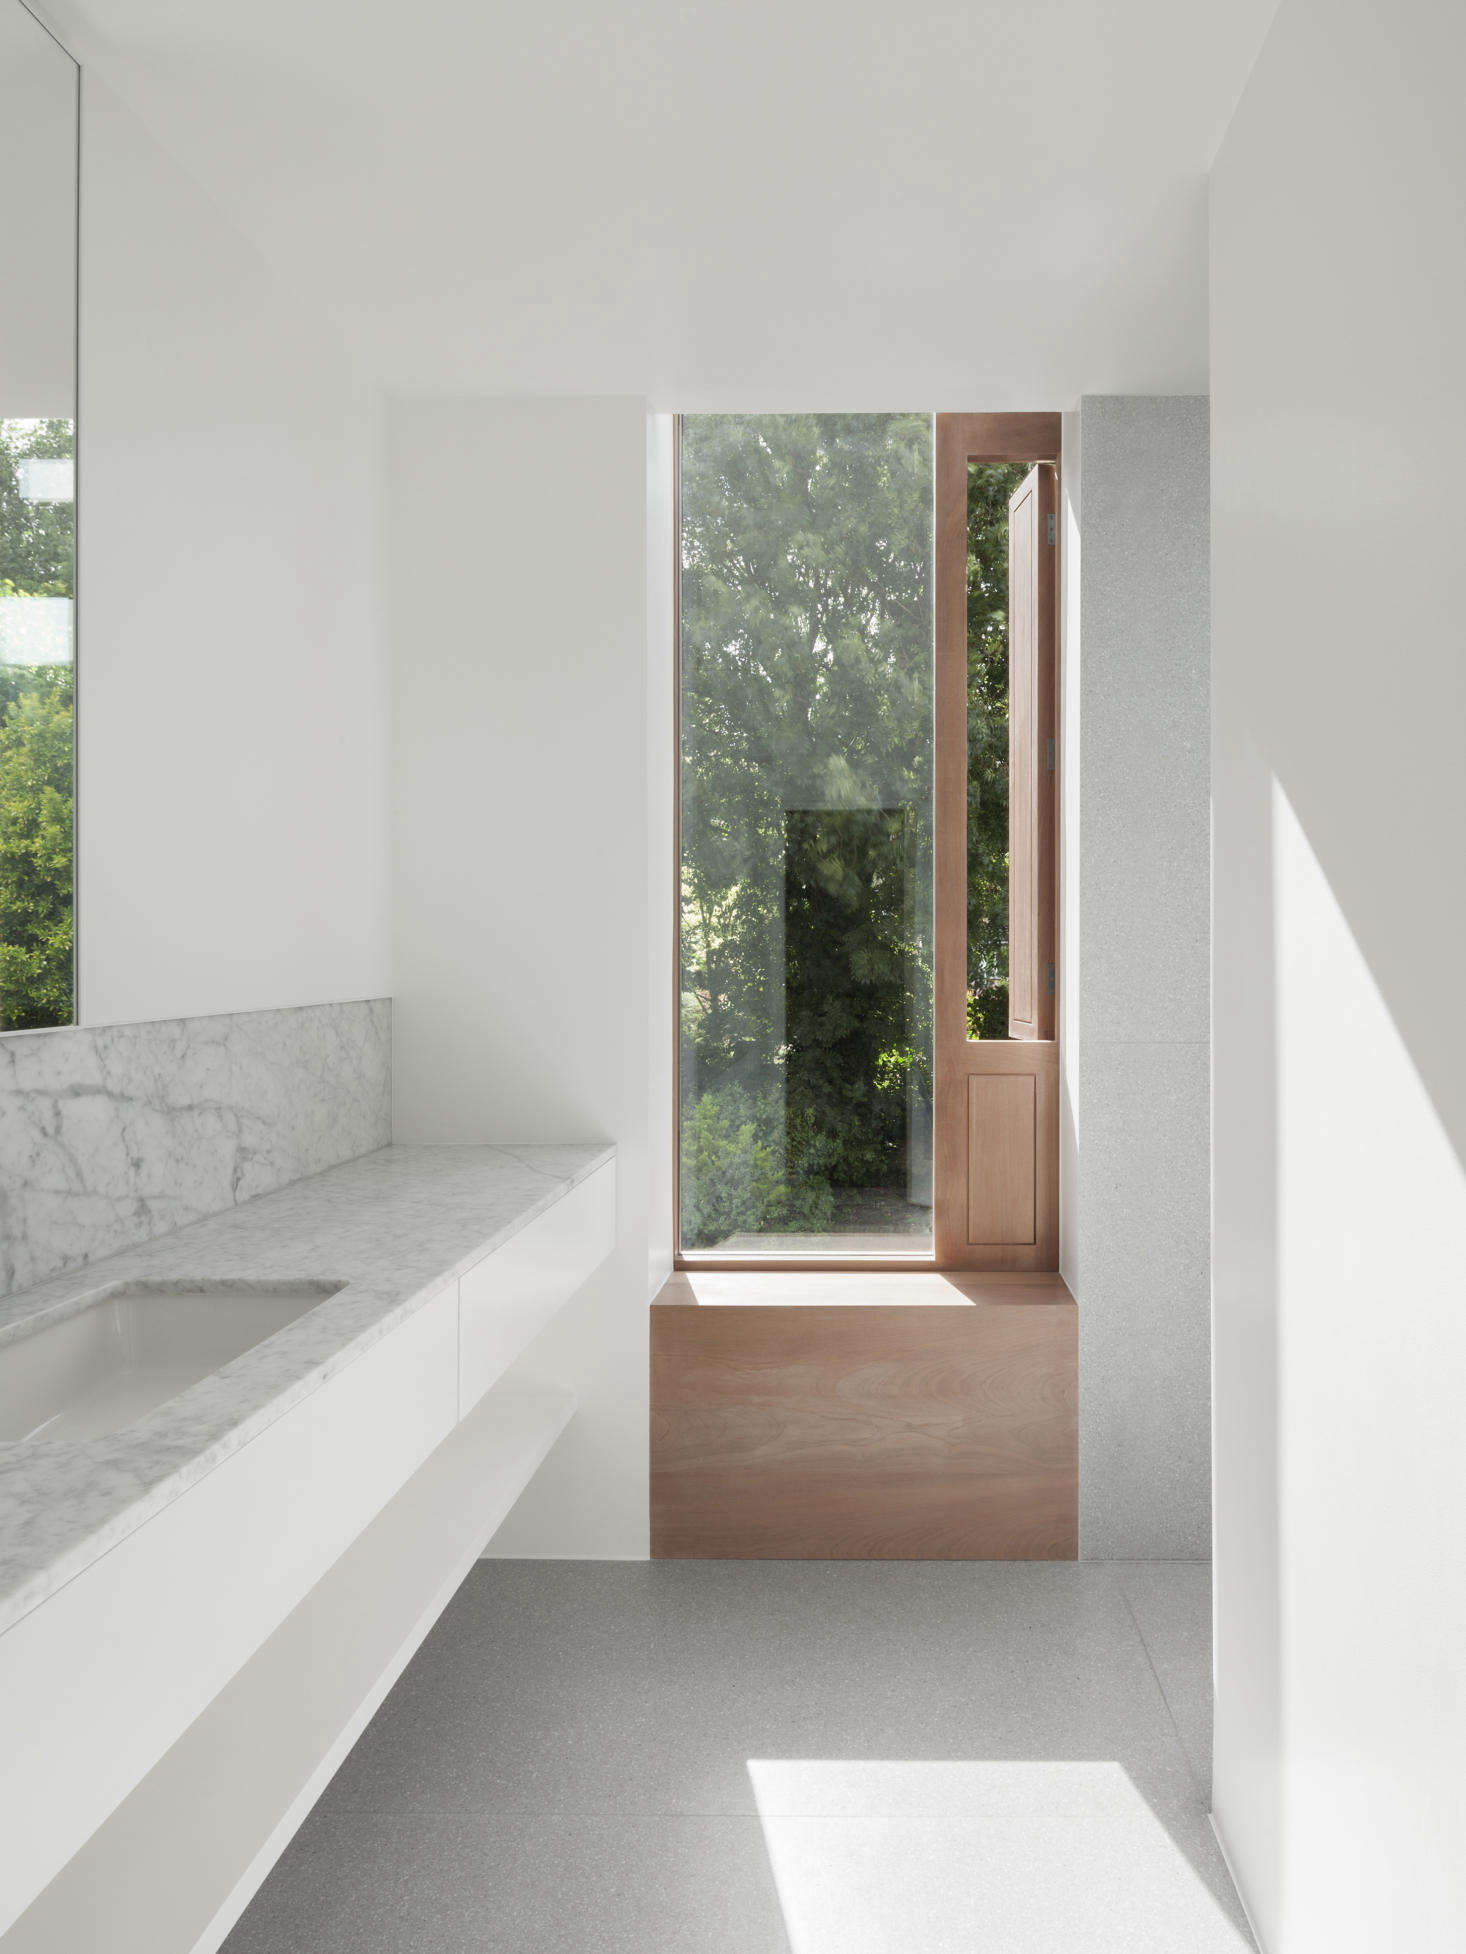 The first-floor bathroom was refurbished as part of the project. The architects installed a glass panel window with a sapele wood frame and single shutter for ventilation. Countertops, as in the kitchen, are Carrara marble from Rossi Stoneworks and the floors are Terrazzo Cement by In Opera Group.